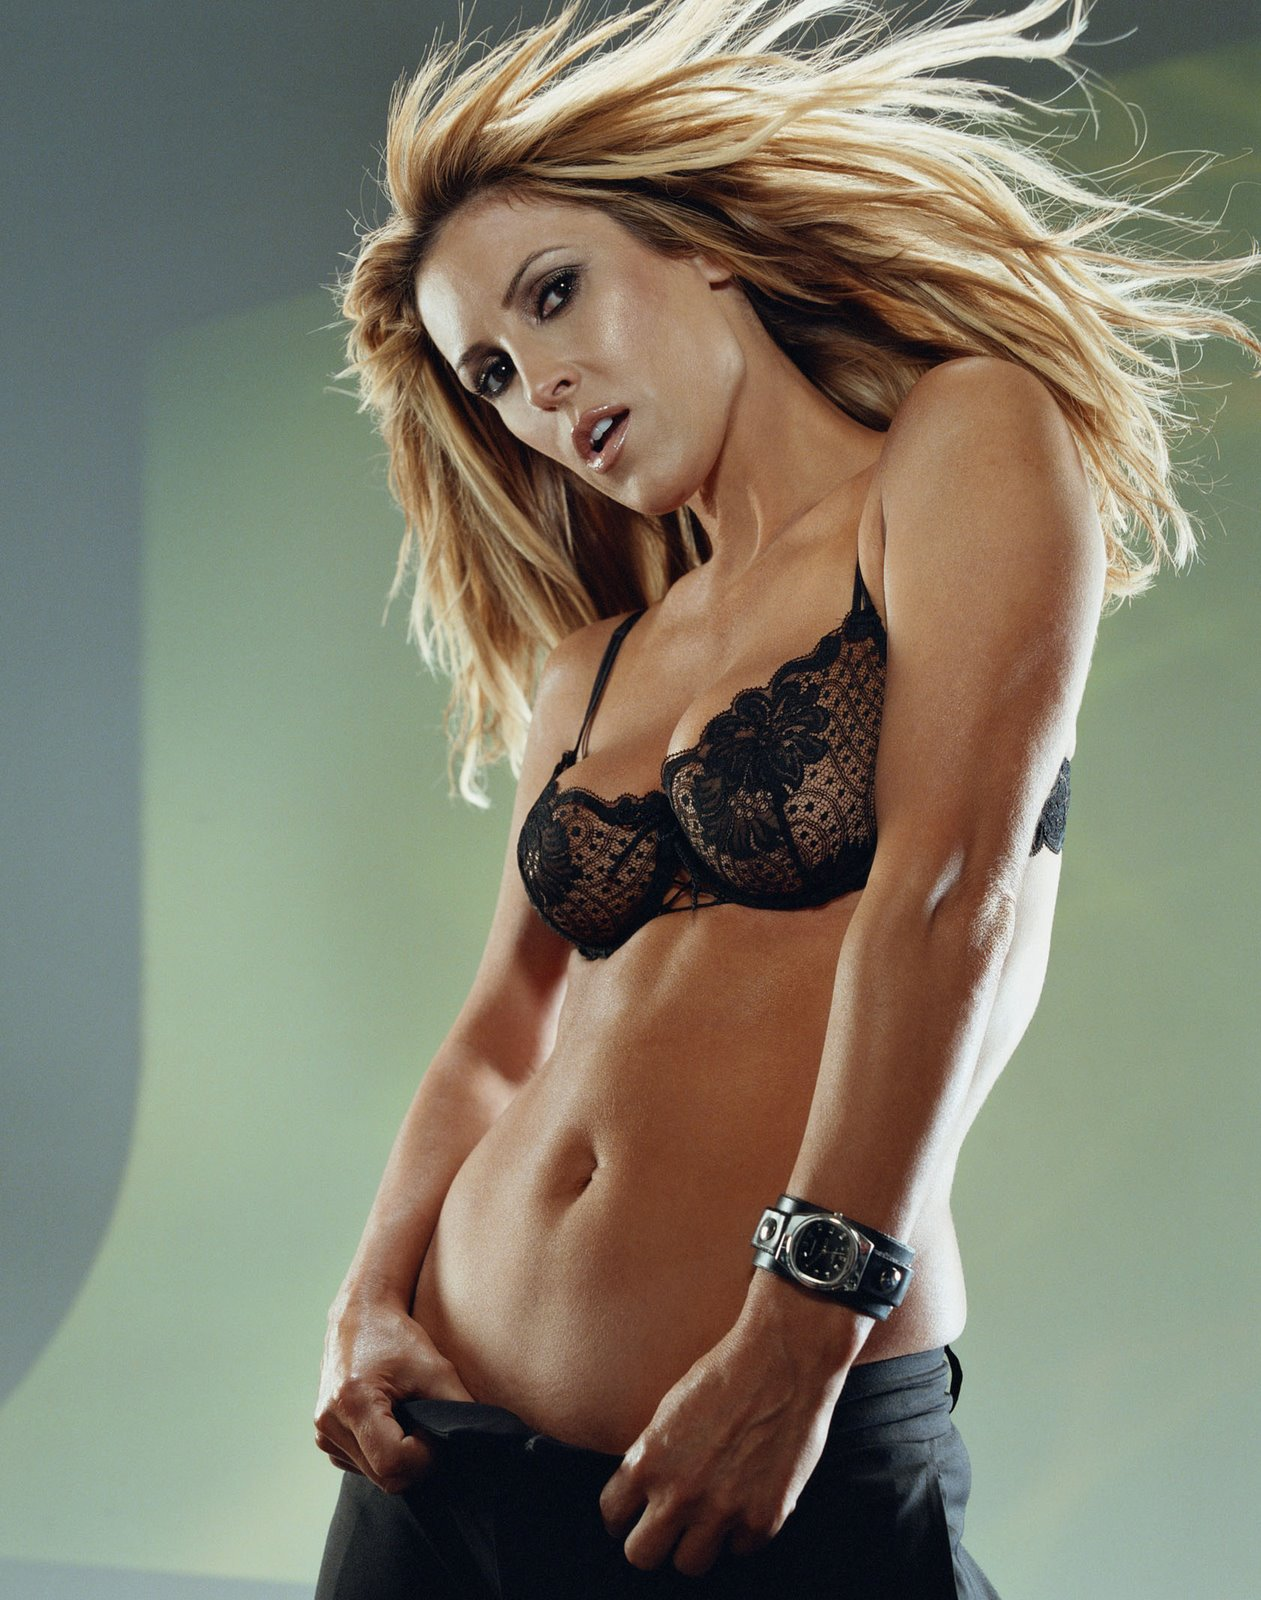 Nicole Briscoe Hot http://sammyvegas.wordpress.com/2008/07/18/fox-sports-vs-espn-who-ya-got/